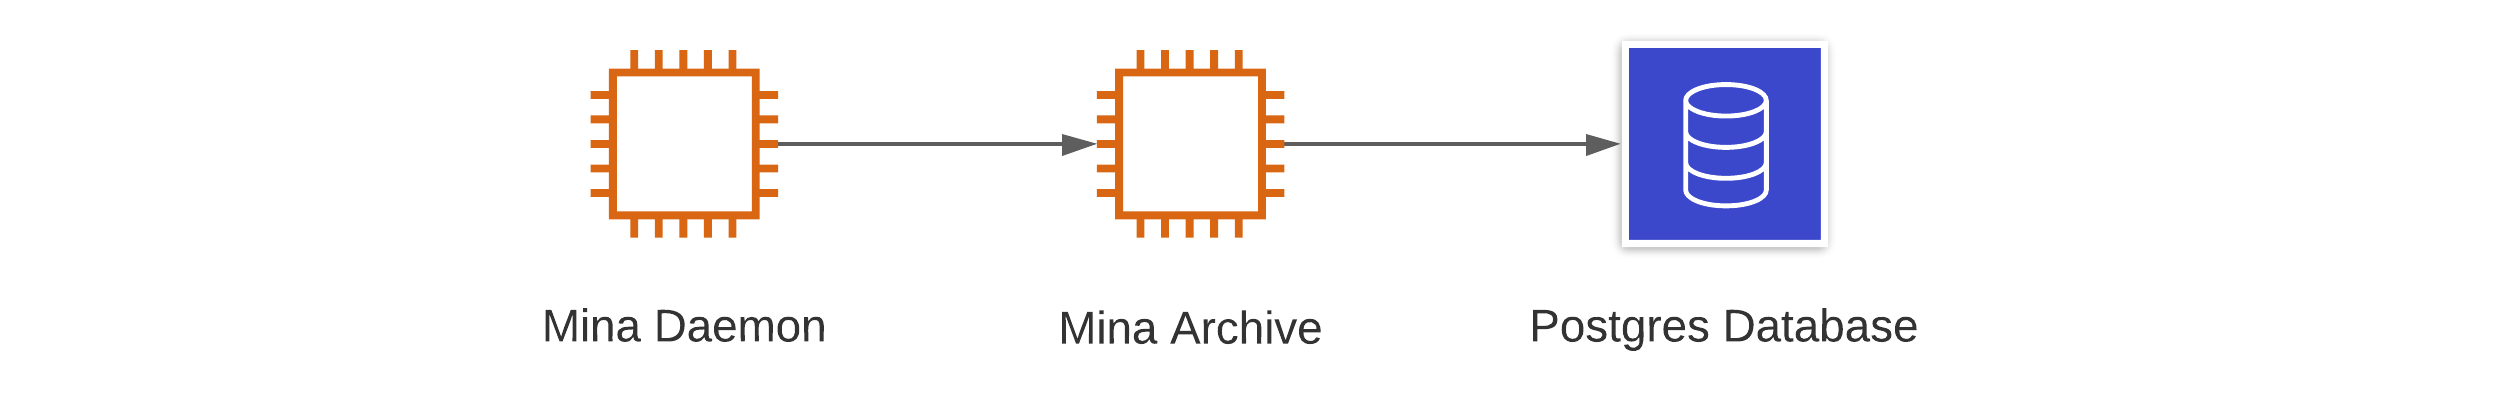 Simplest configuration of an archive node